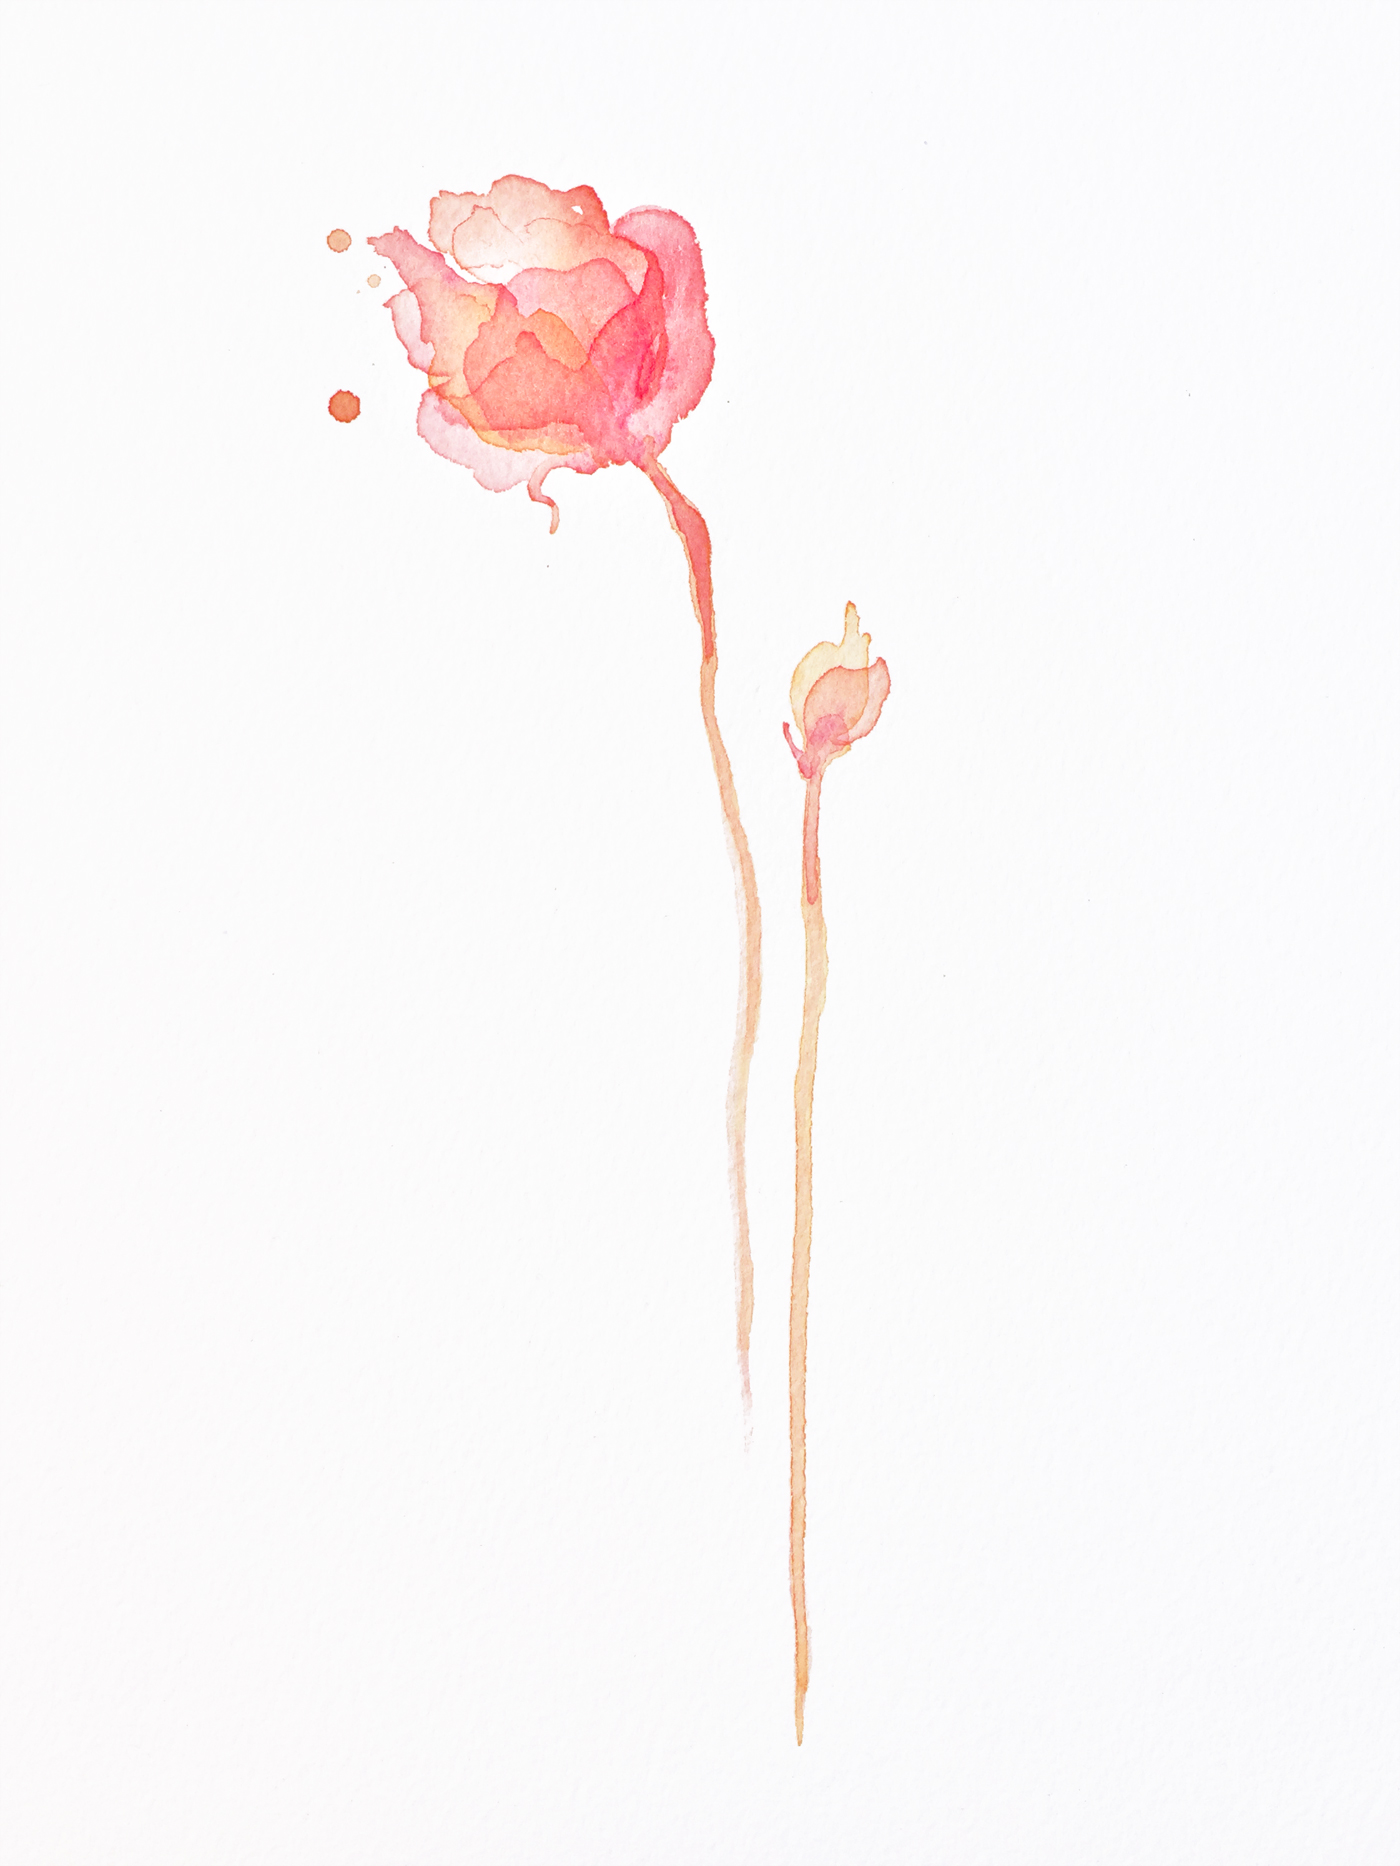 hovering_roses_1200x1600